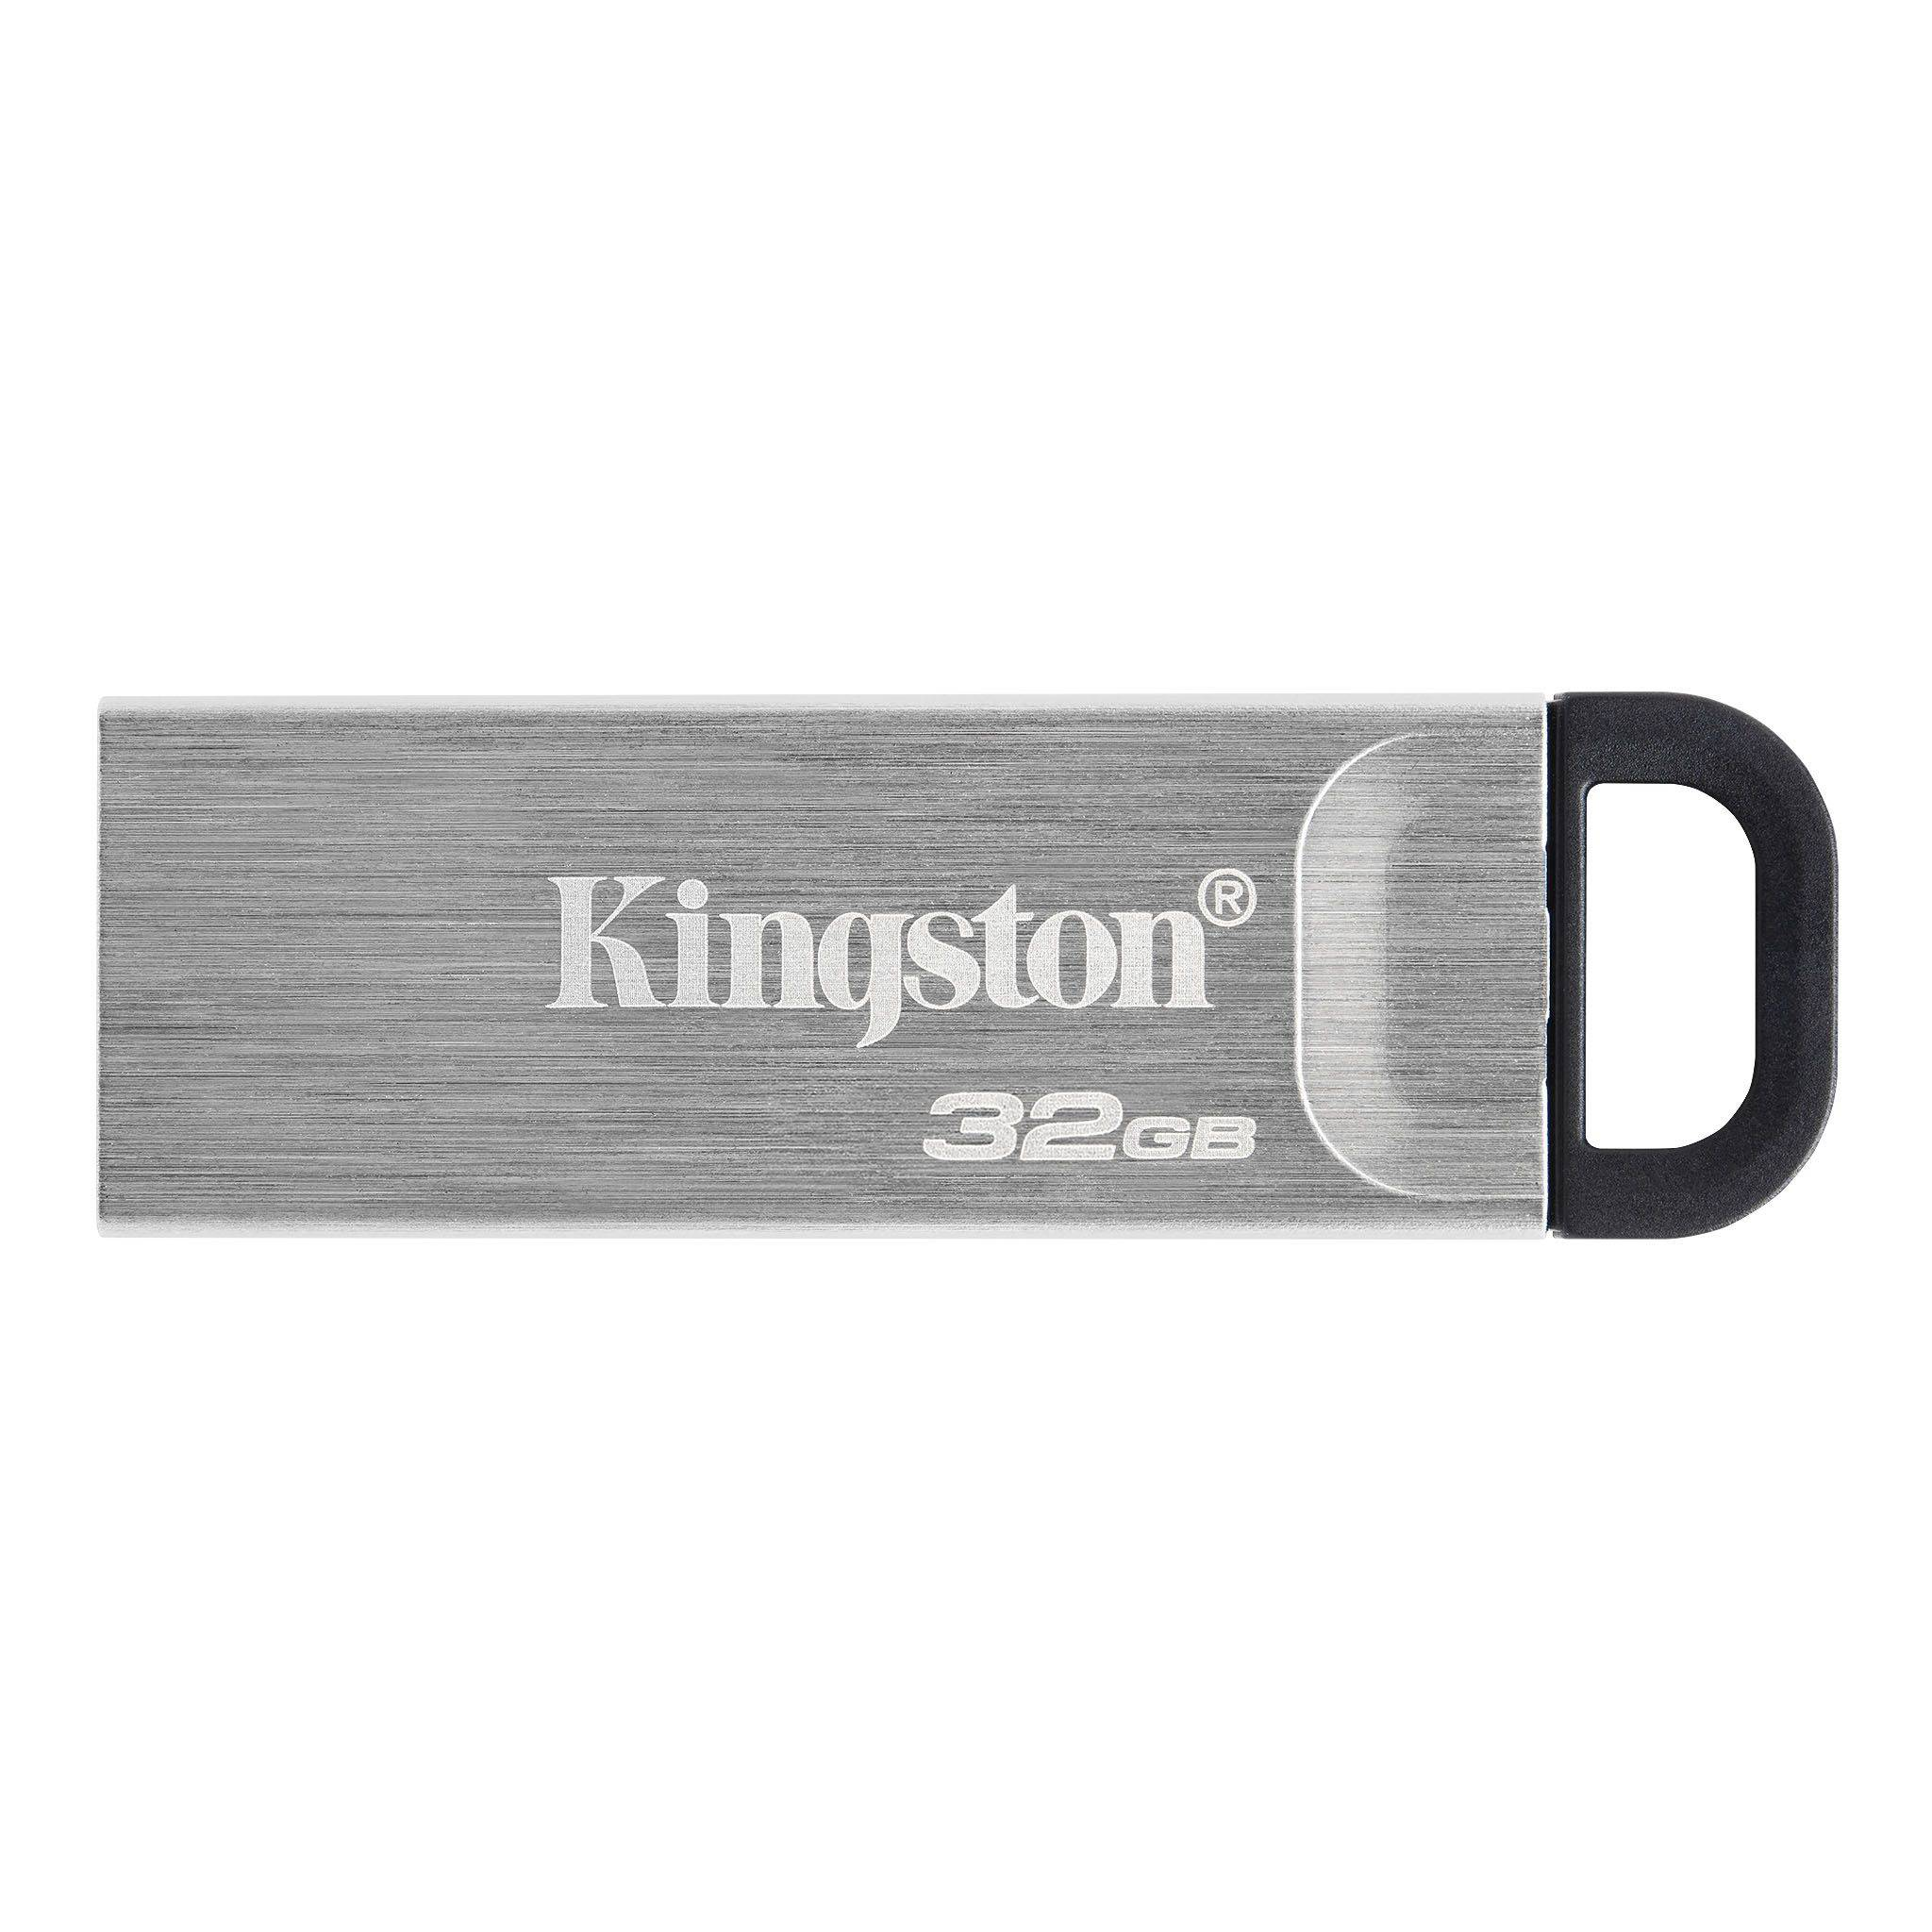 32GB Kingston USB 3.2 (gen 1) DT Kyson